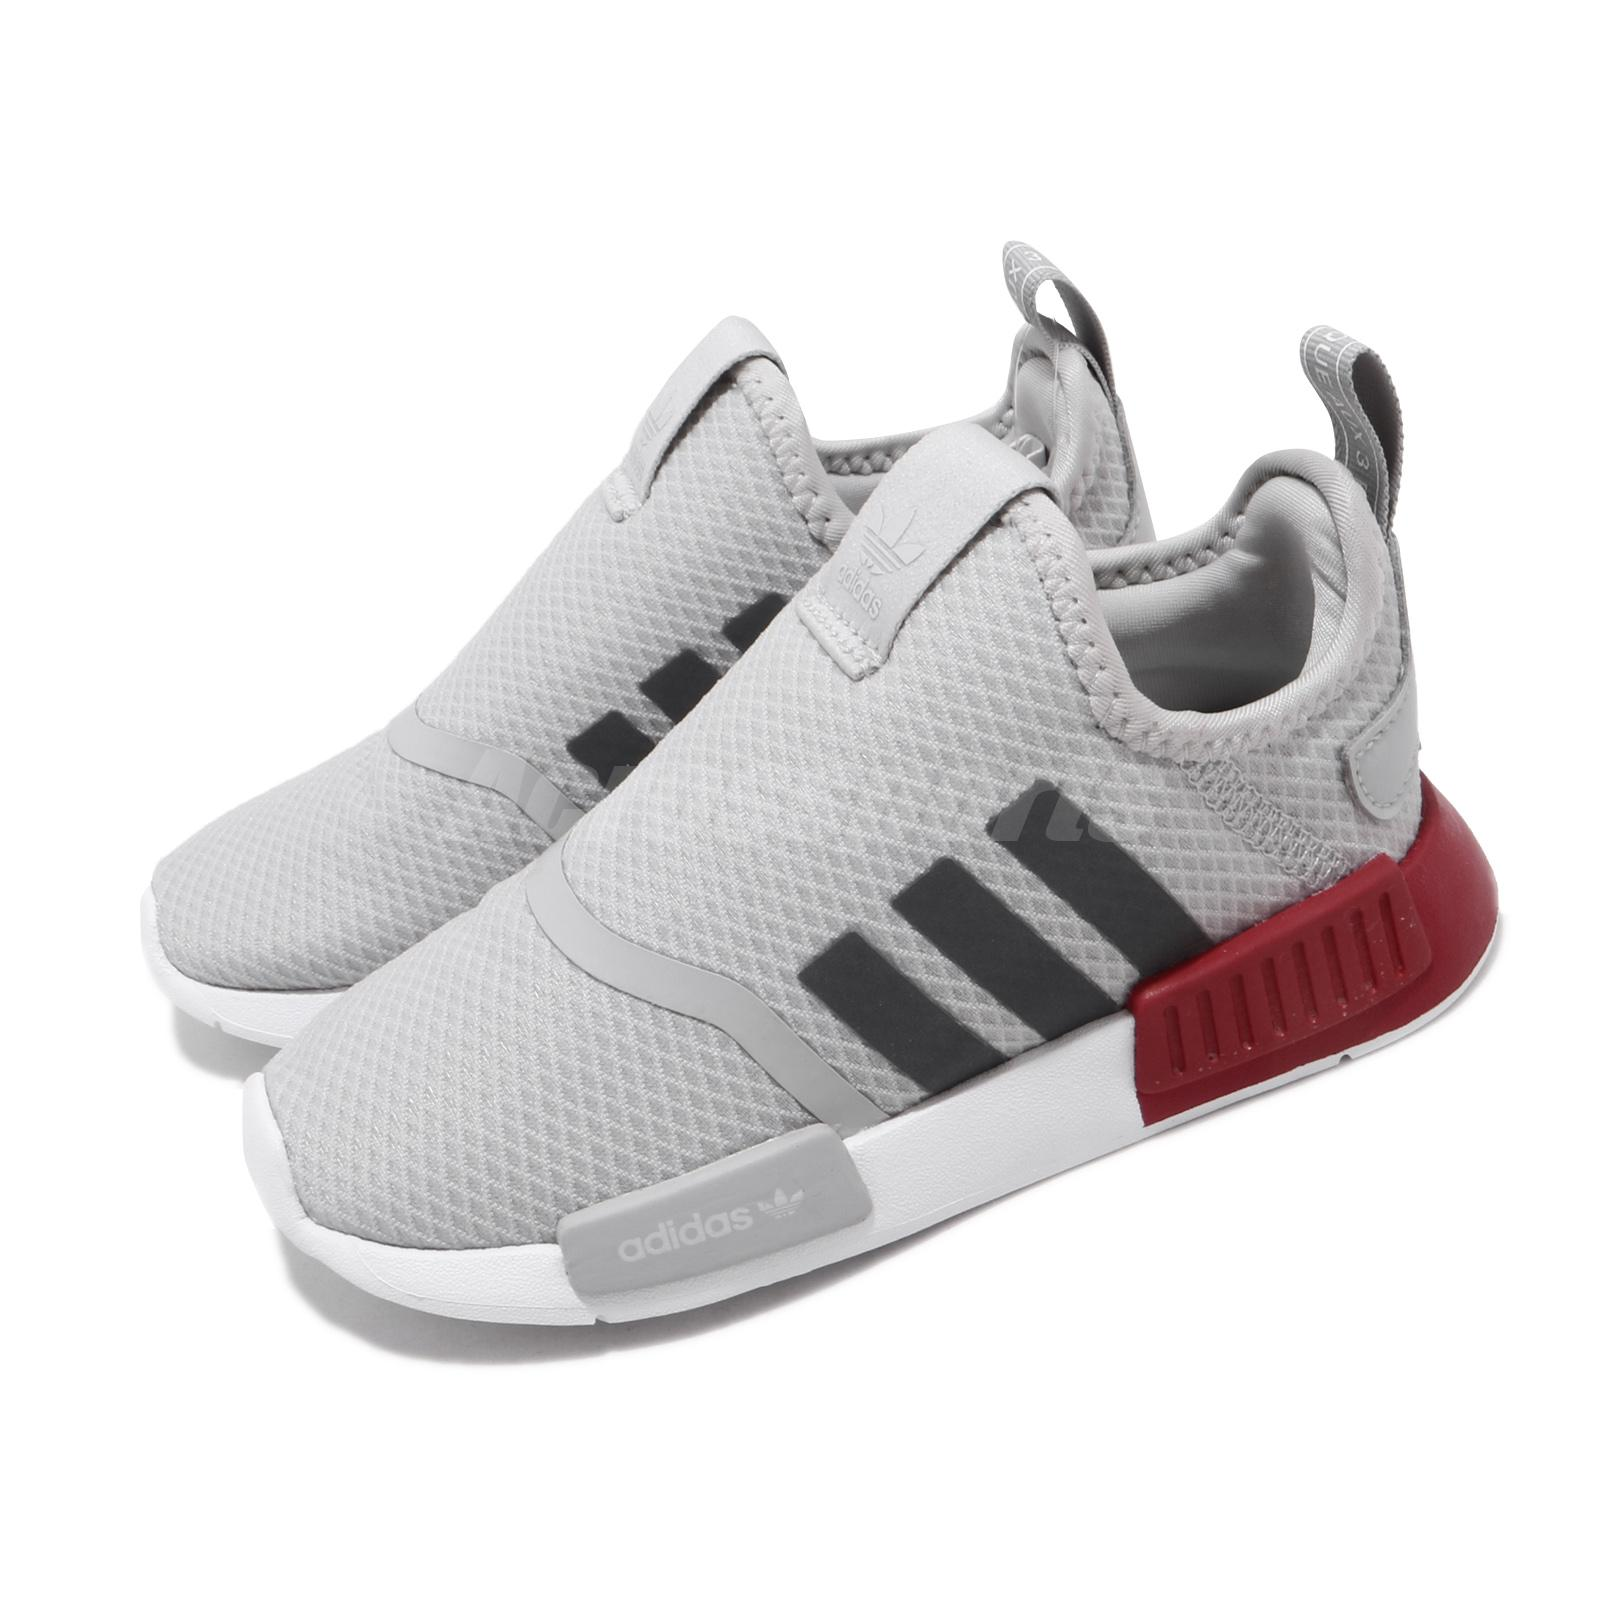 adidas NMD 360 I Grey Red Infant Baby